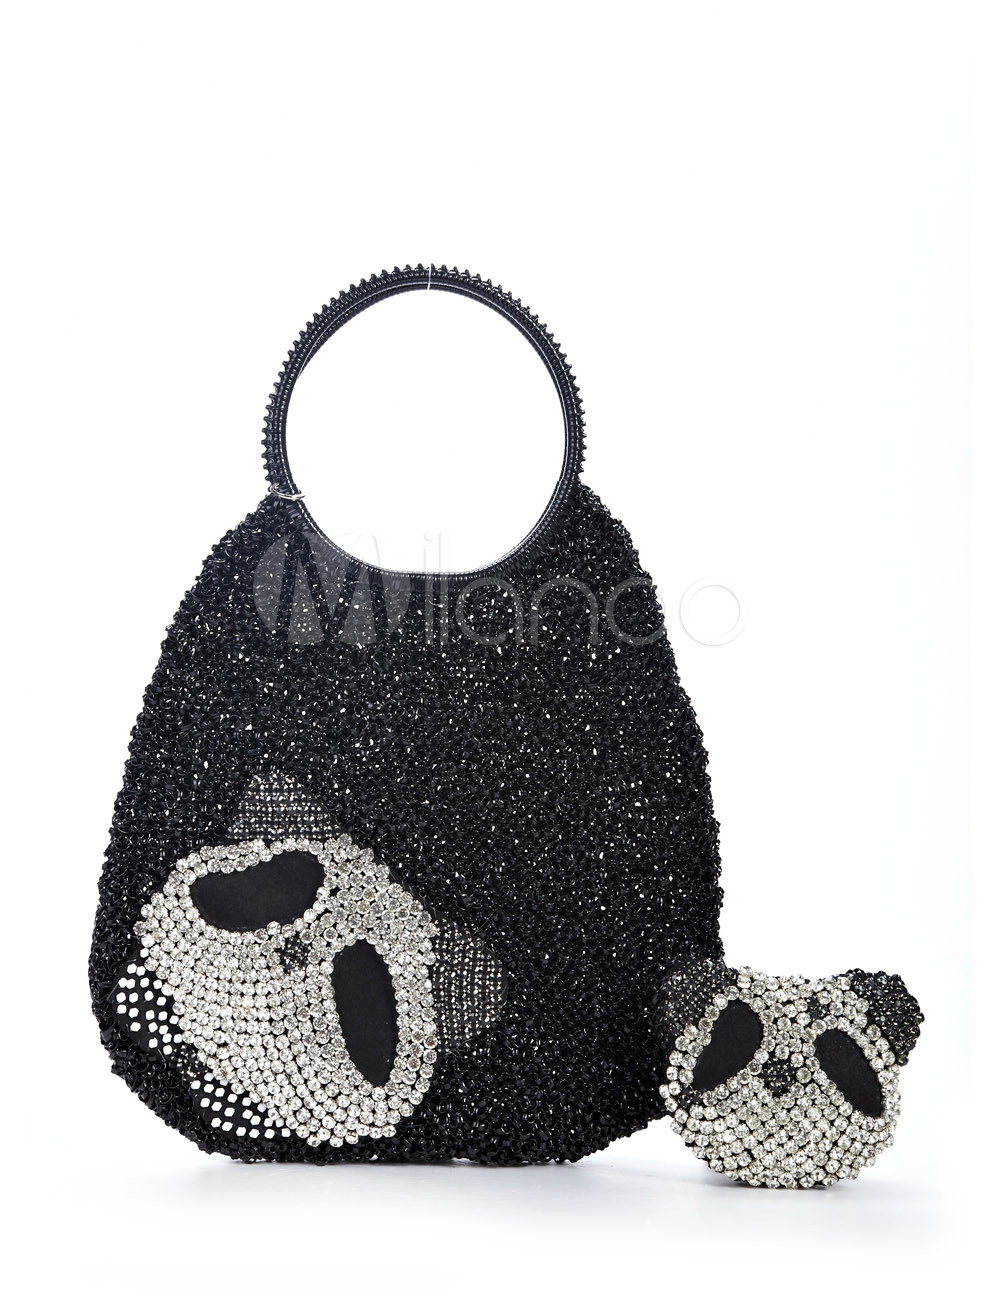 Cute Black Rubber 32*5*33cm Womens Tote Handbag